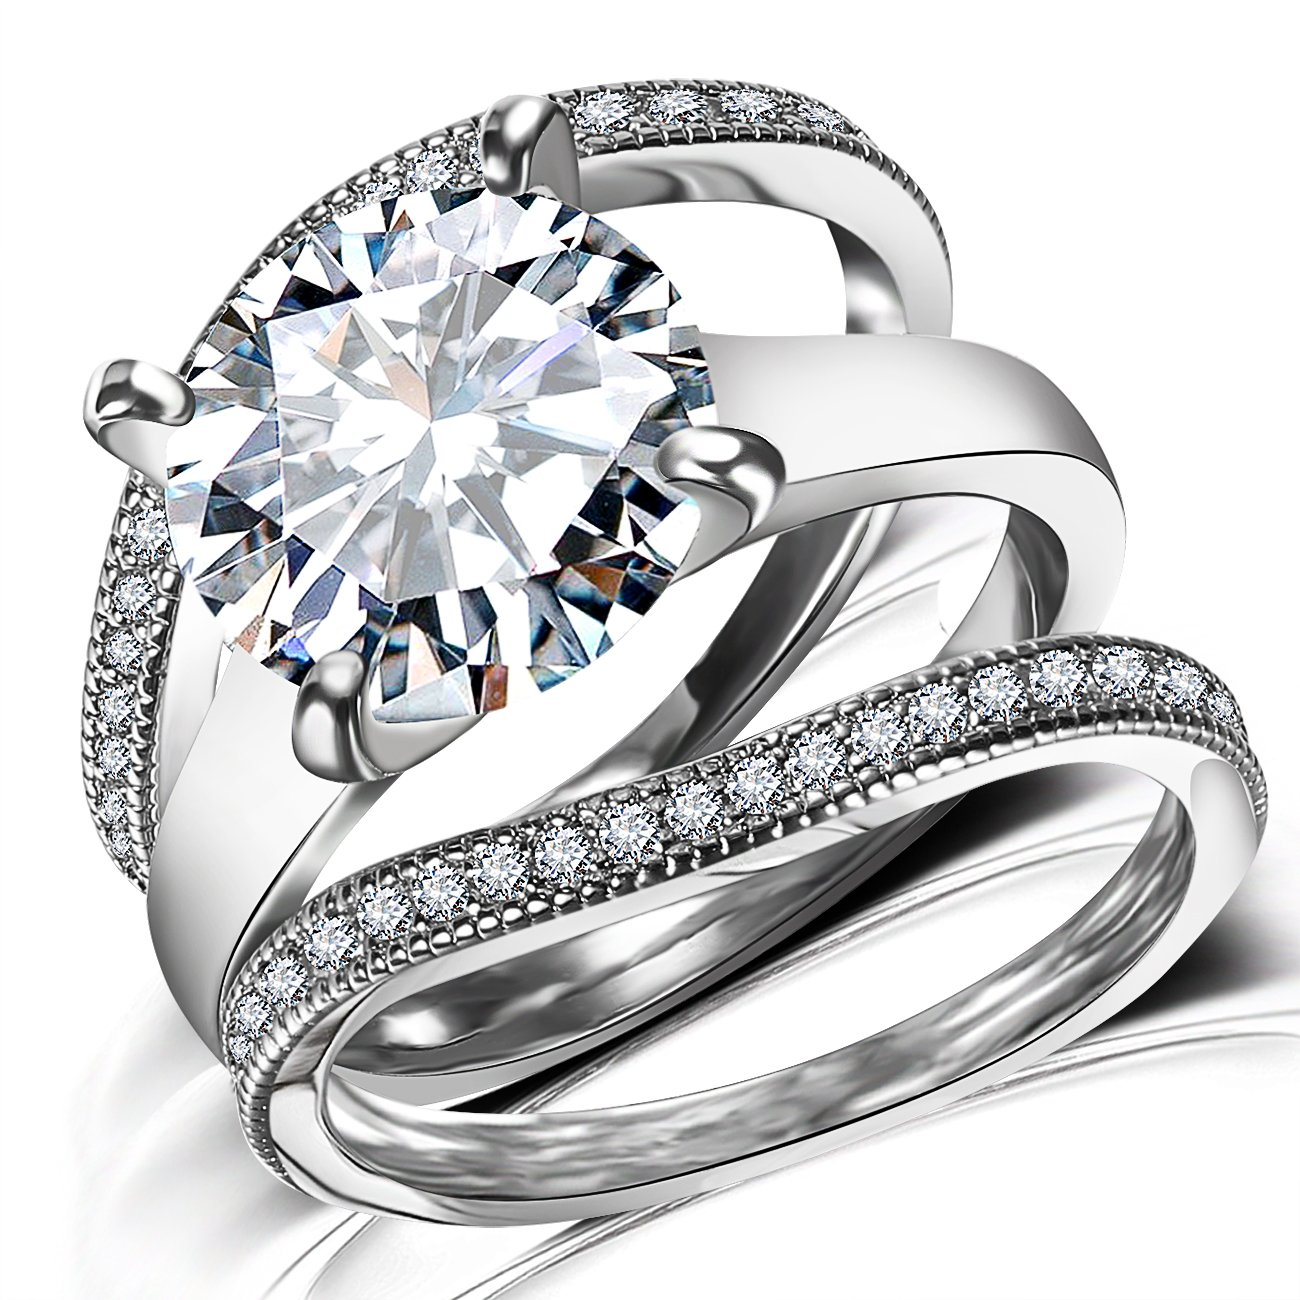 Platinum Plated Bridal Set - Round Cut Cubic Zirconia Rings Women Engagement Ring Set with Wedding Band by Hiyong (Image #3)